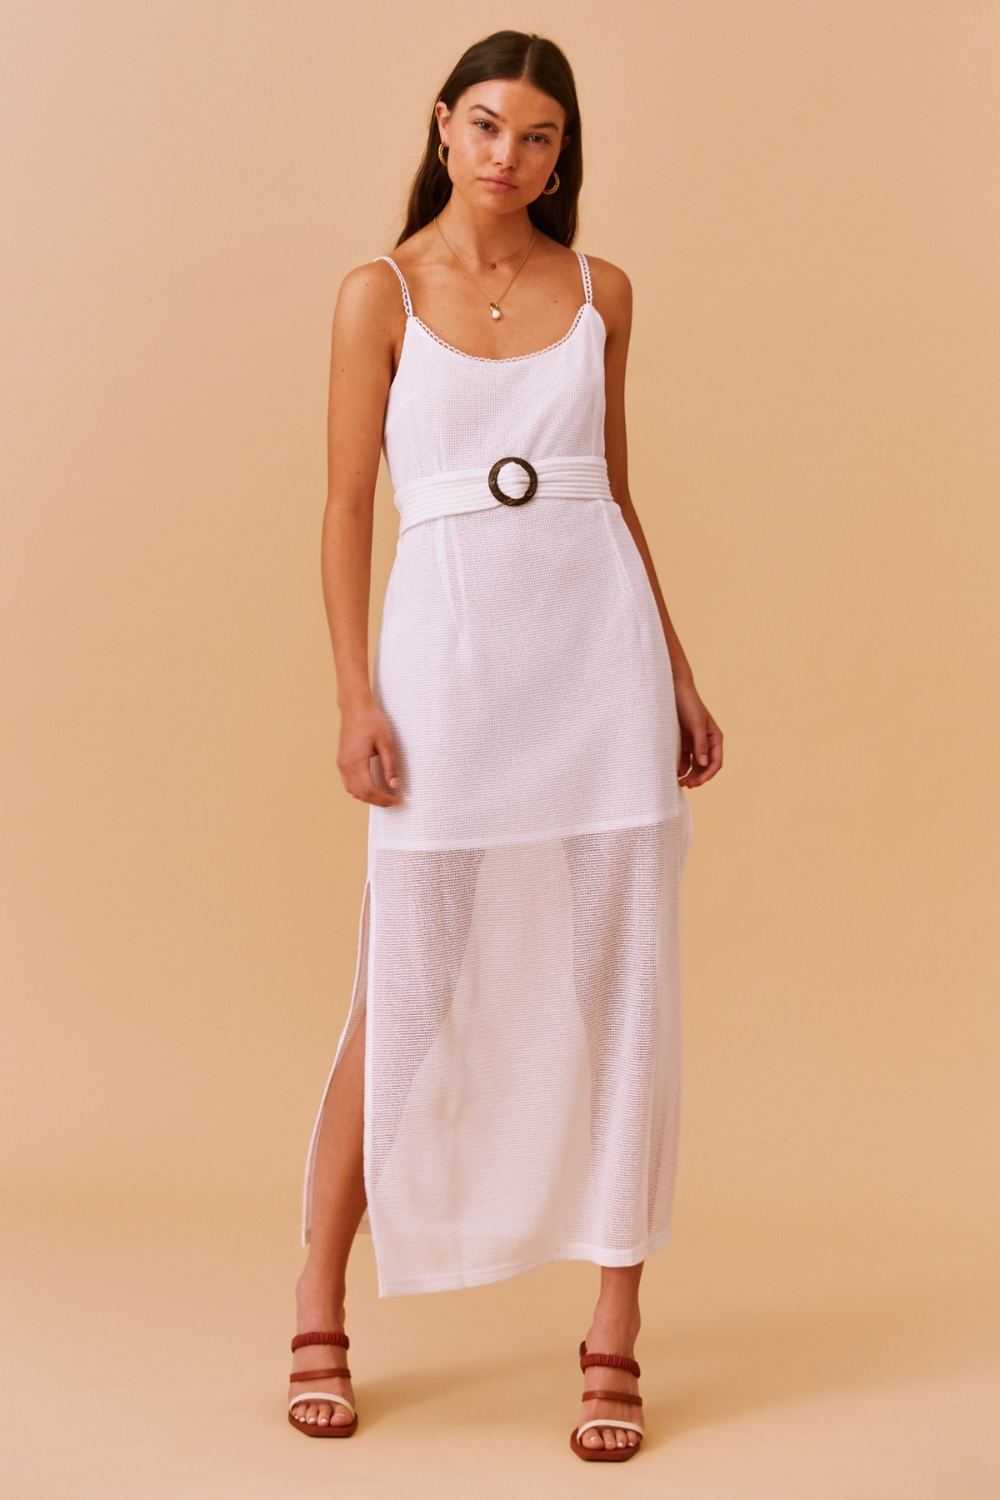 Coconut Dress Ivory Finders Keepers Bnkr In 2020 Coconut Clothes Women Dress Online Shop Cocktail Dresses